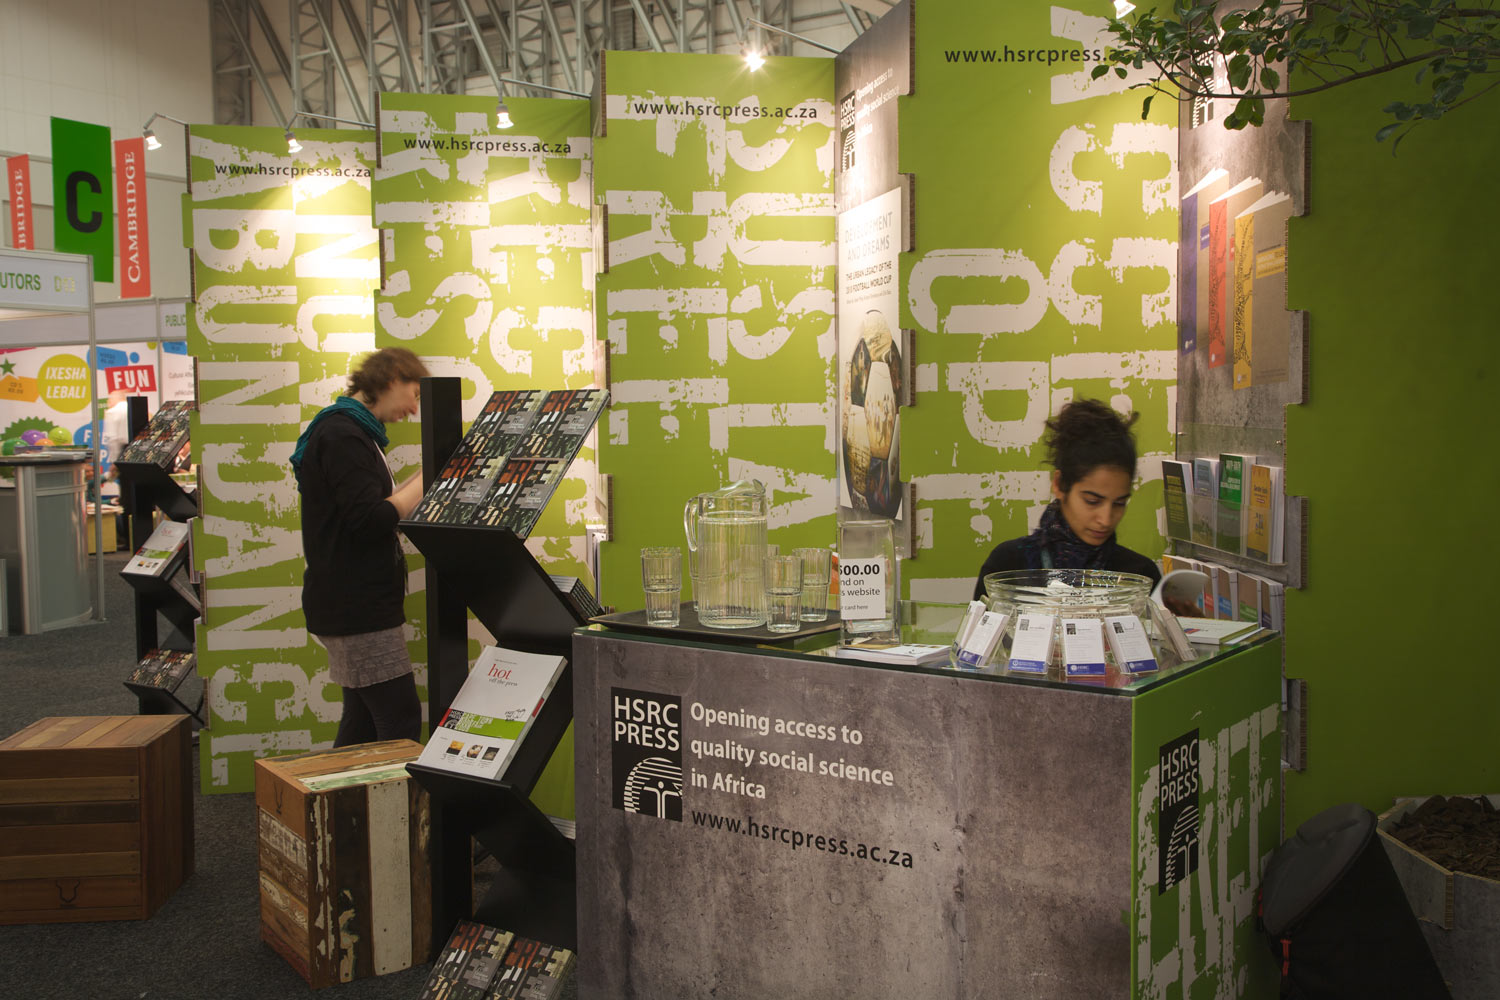 Exhibition Stand Hire Cape Town : Self standing exhibition stand for hsrc press farm design